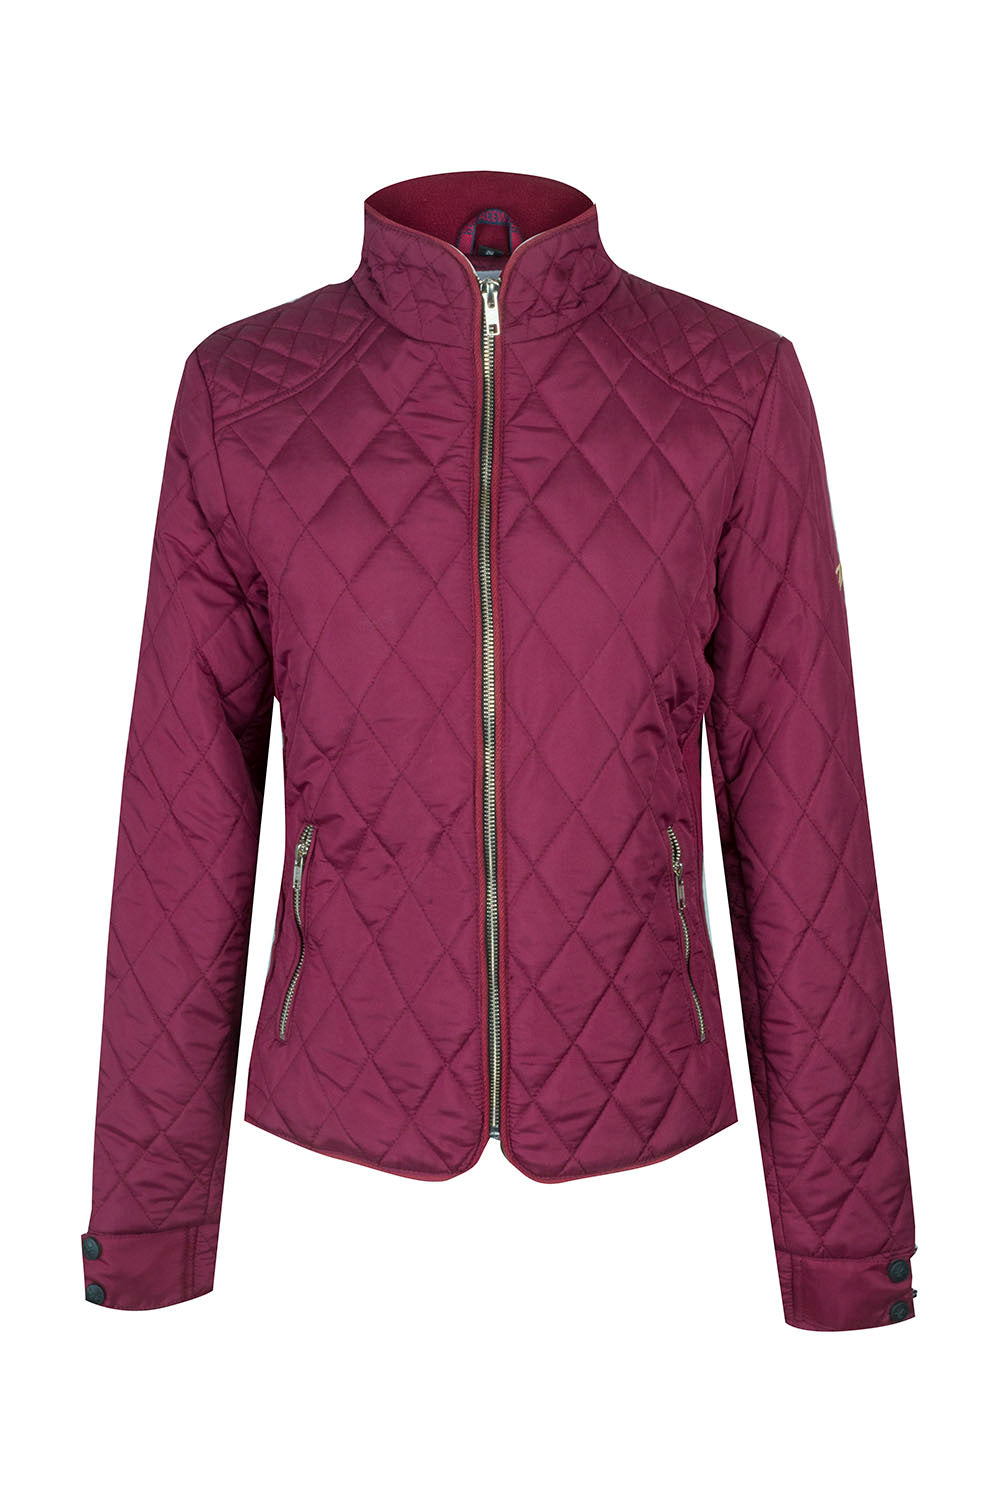 A Little Bit Racey Jacket - Burgundy